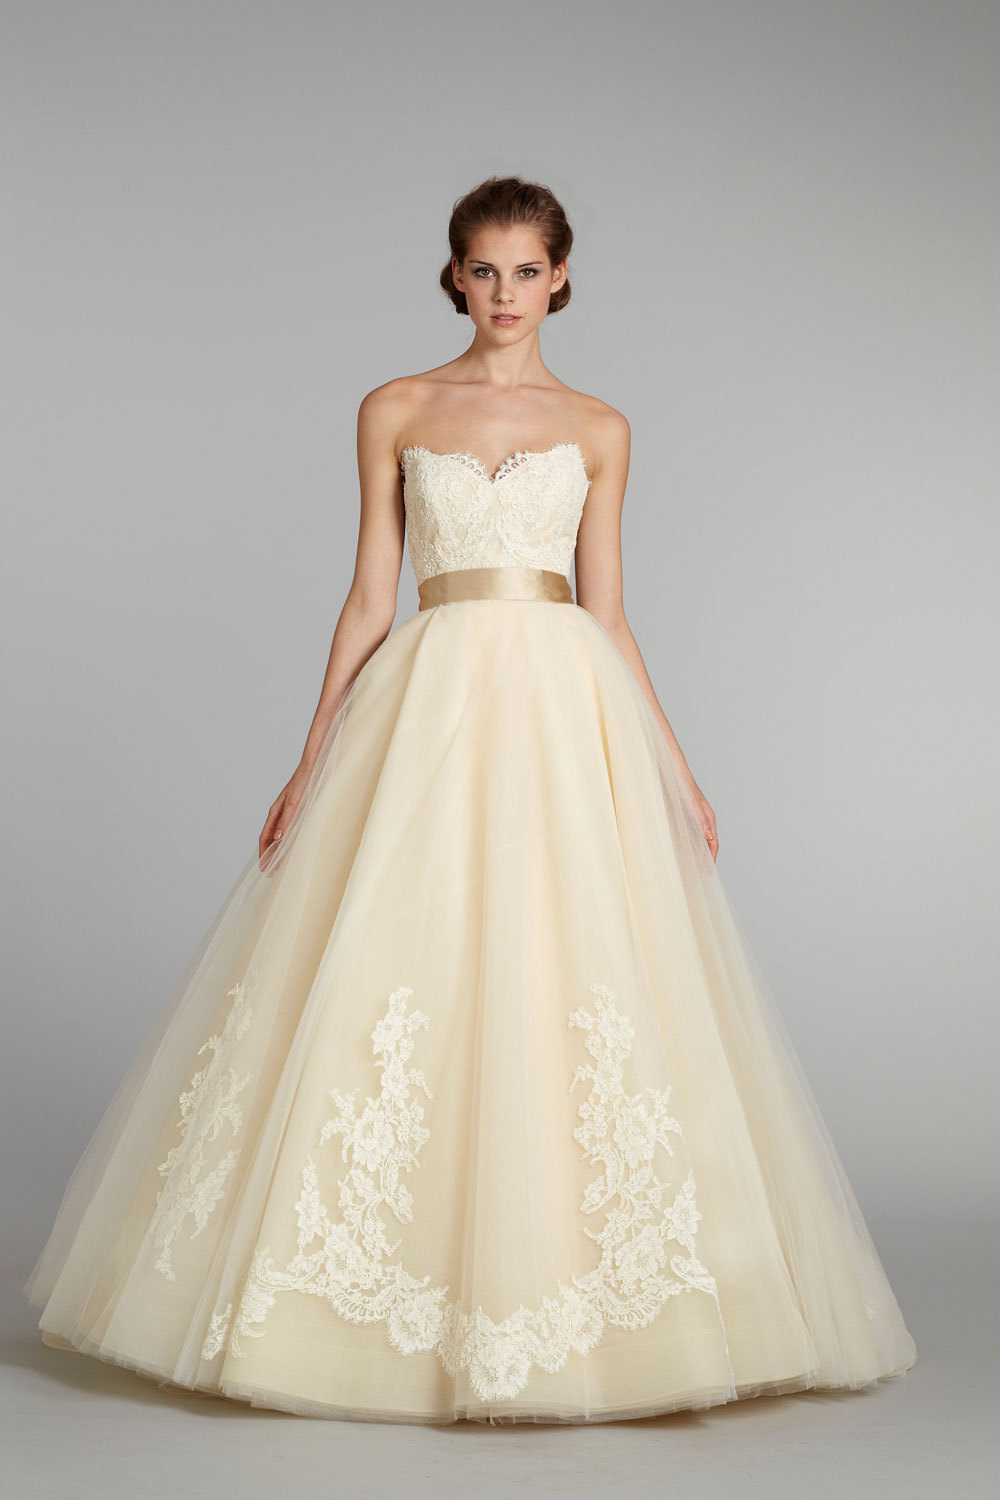 Fall-2012-wedding-dress-lazaro-bridal-gowns-3251-pale-yellow-ballgown.full